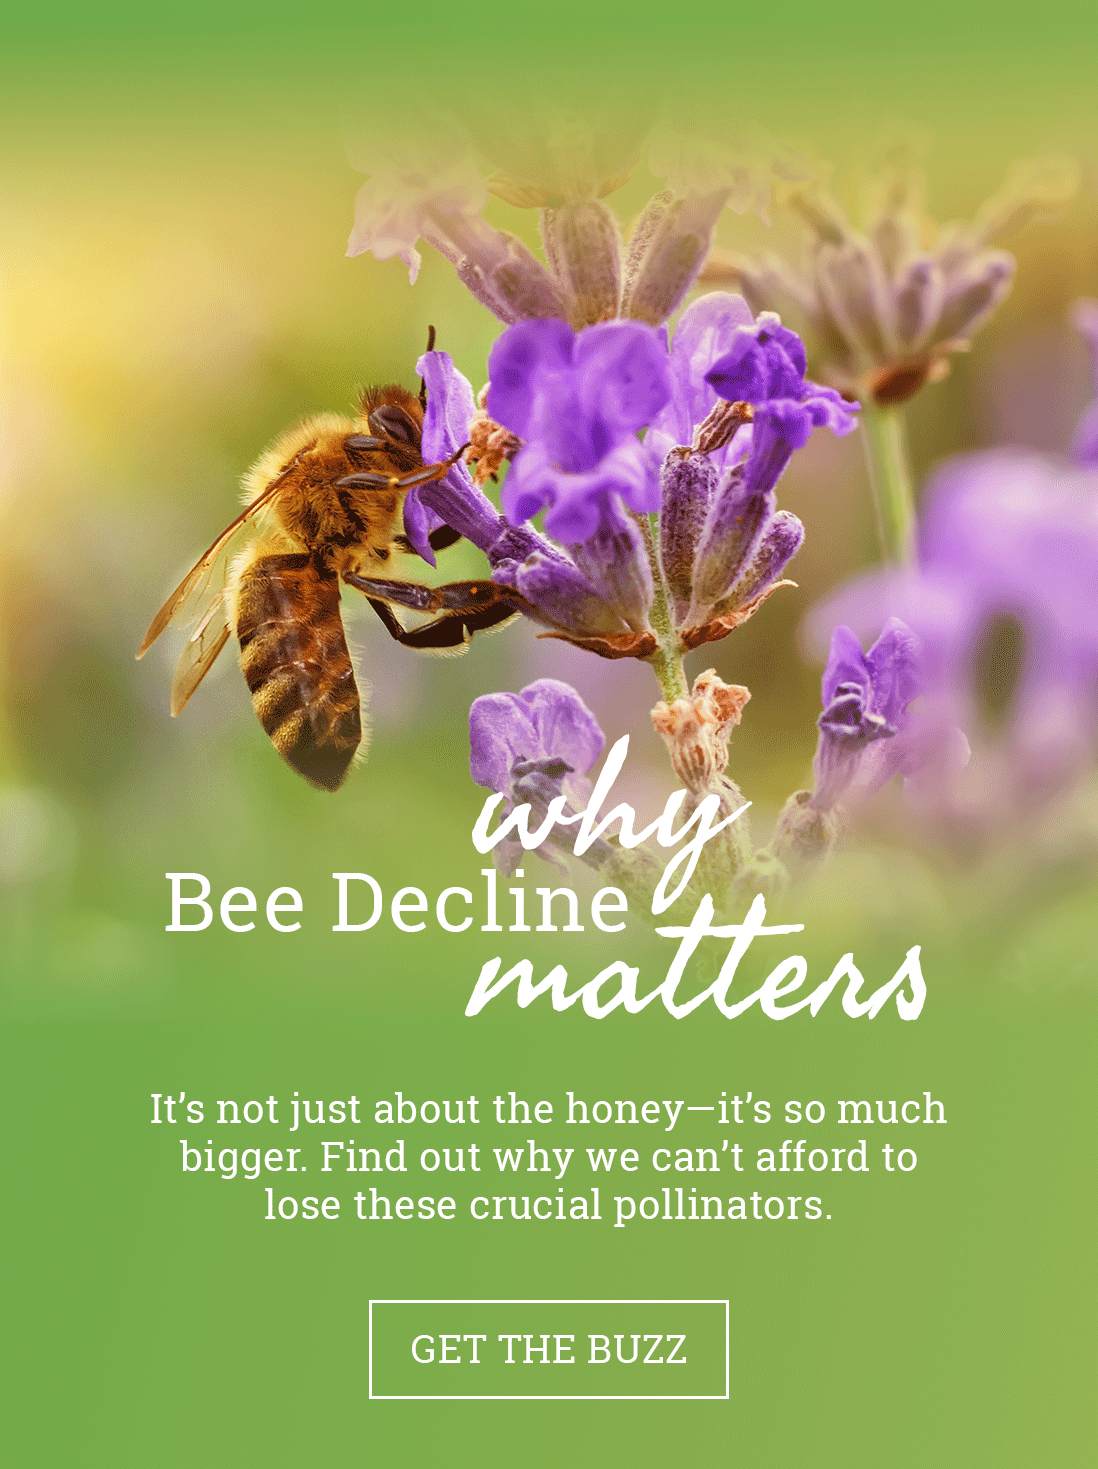 Bee decline is a serious, global issue. Find out why.